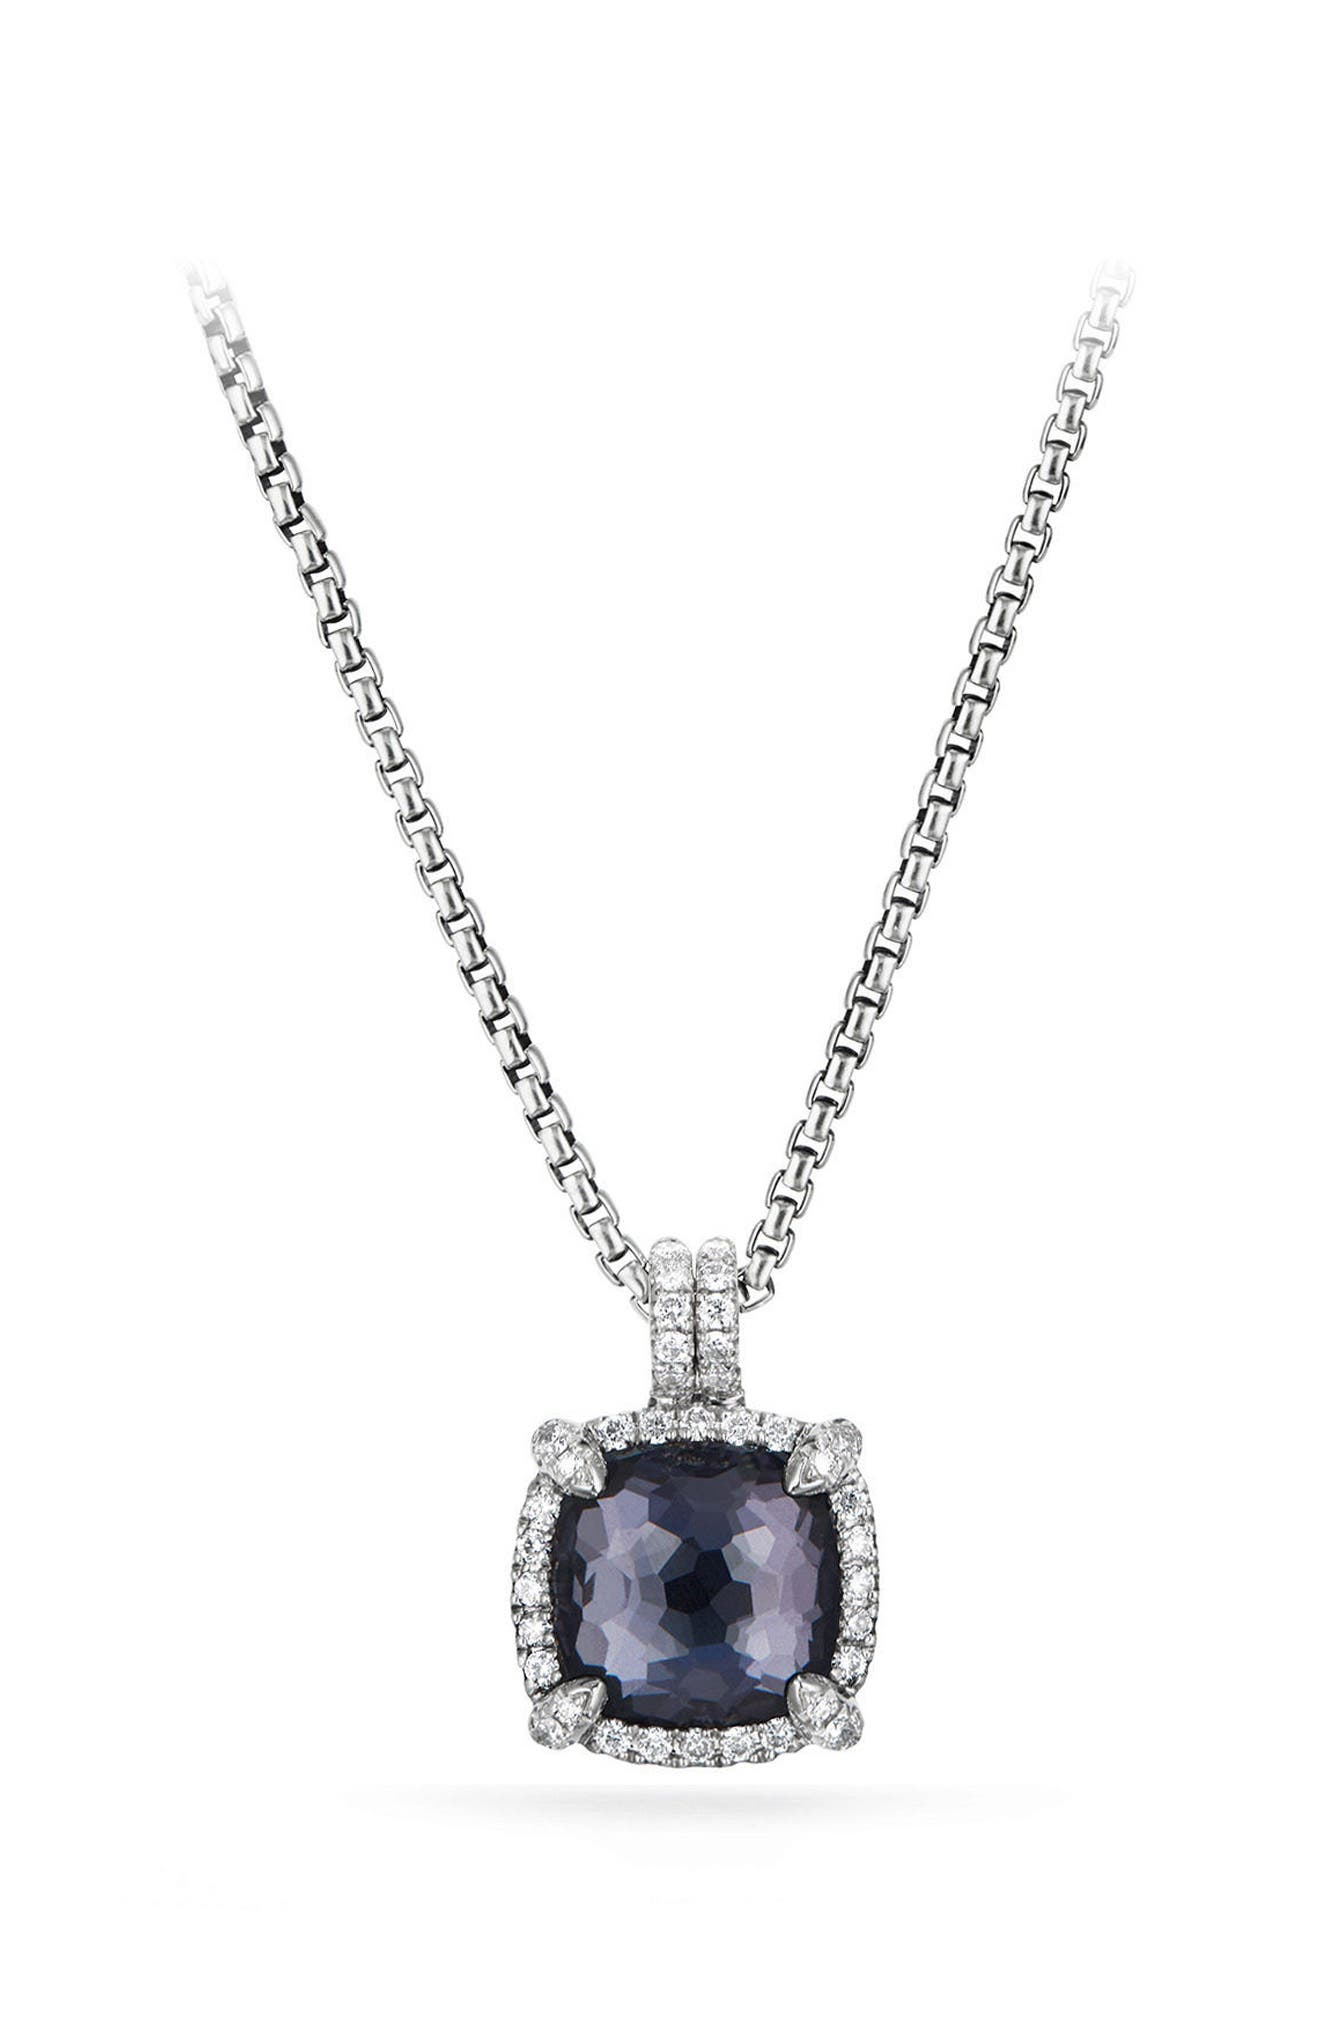 David Yurman Chatelaine Pavé Bezel Pendant Necklace with Black Orchid and Diamonds